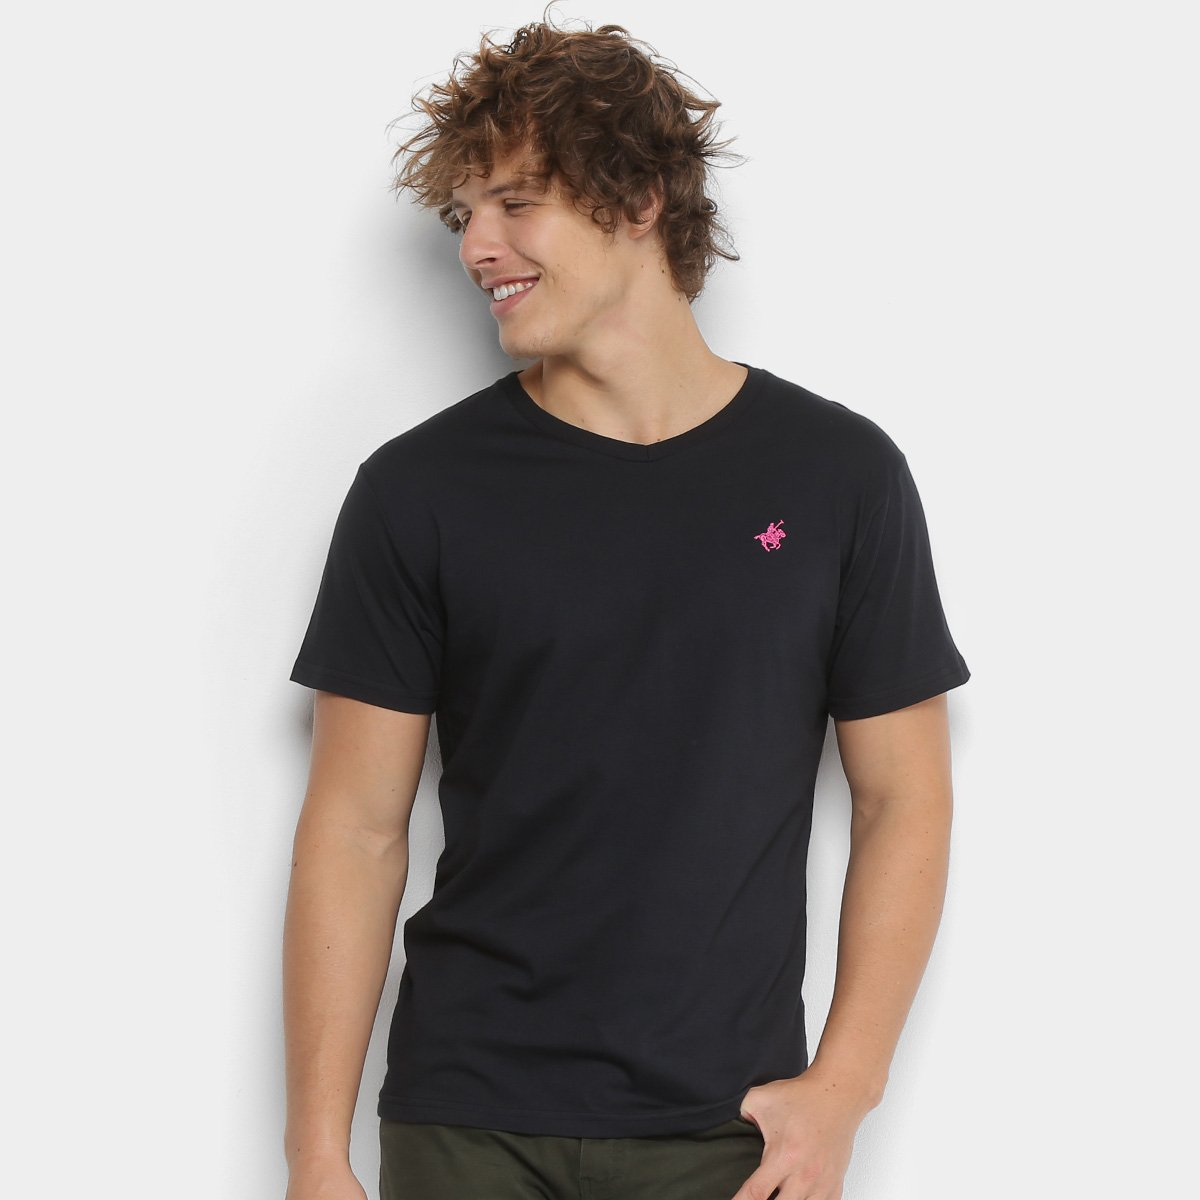 a431390ac3 Camiseta Polo UP Gola V Masculina